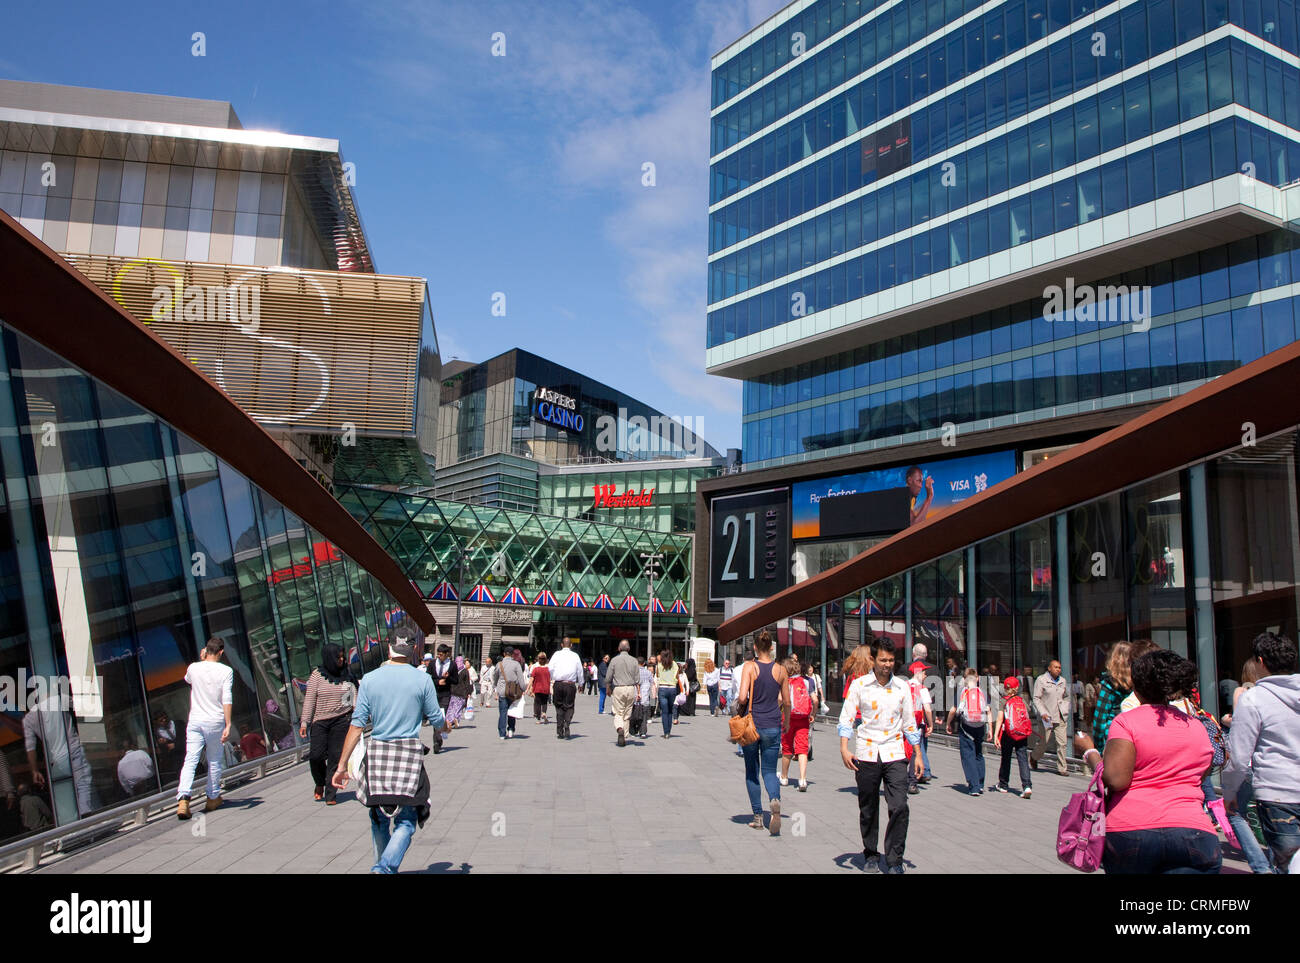 Entrance to Westfield Stratford City shopping centre, London - Stock Image